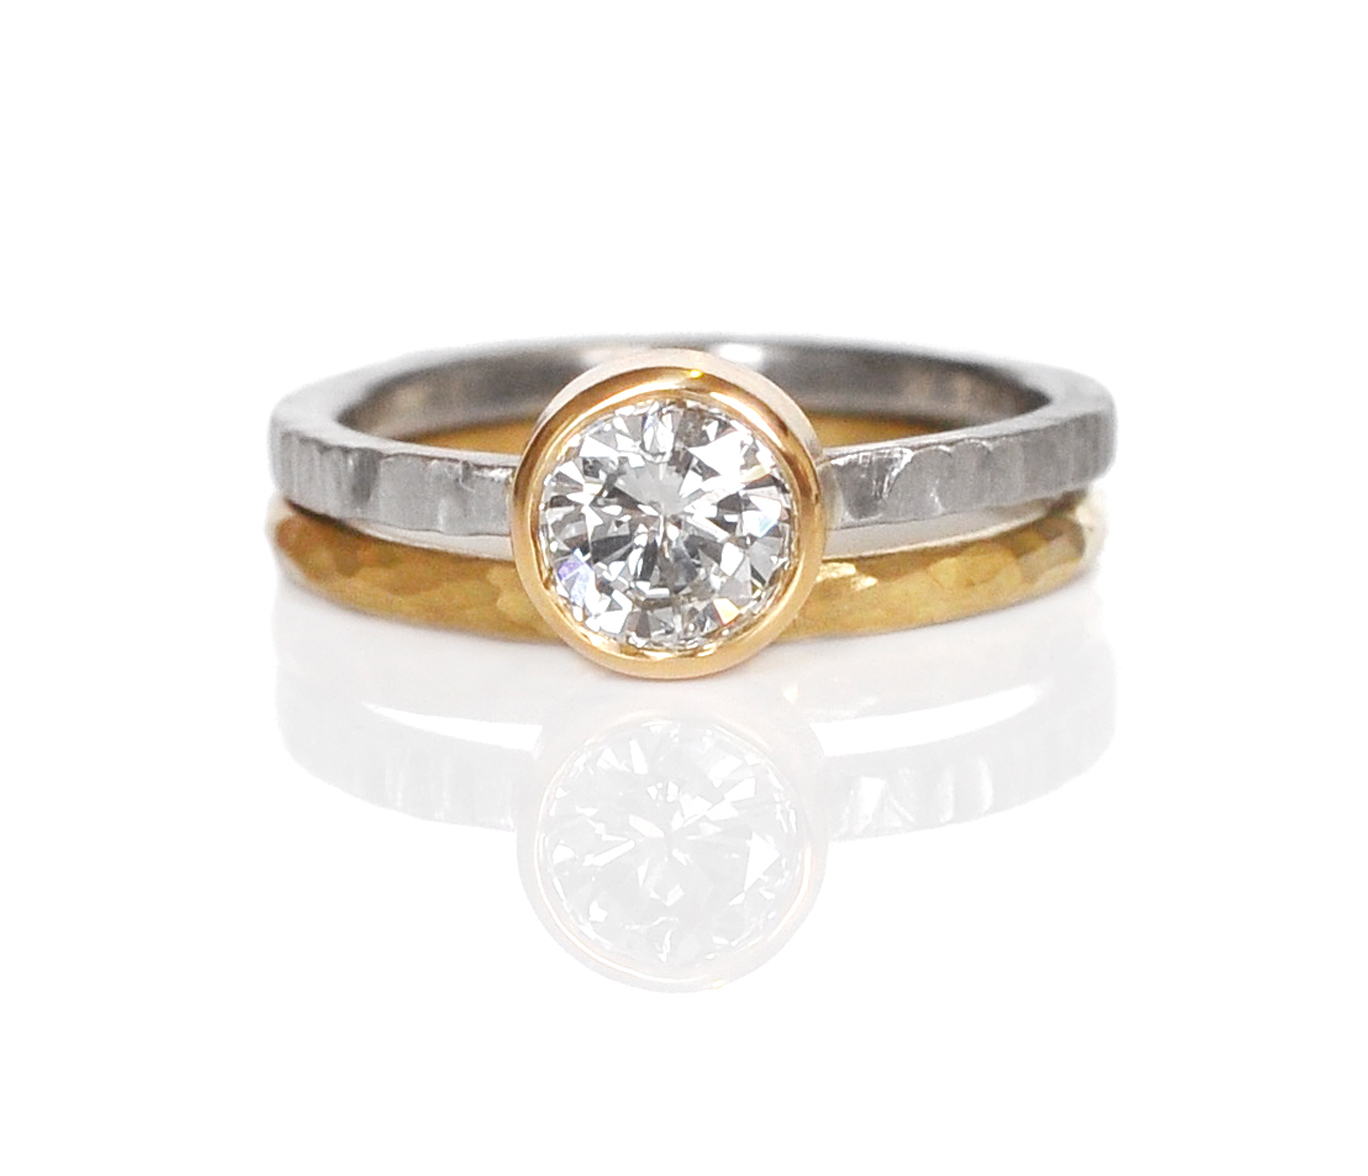 A beautiful mixed texture diamond remount for Jan! An 18k yellow gold bezel for her white diamond, set on a linear hammered palladium band and stacked with a round hammered 18k yellow gold band to bring out the bezel color.